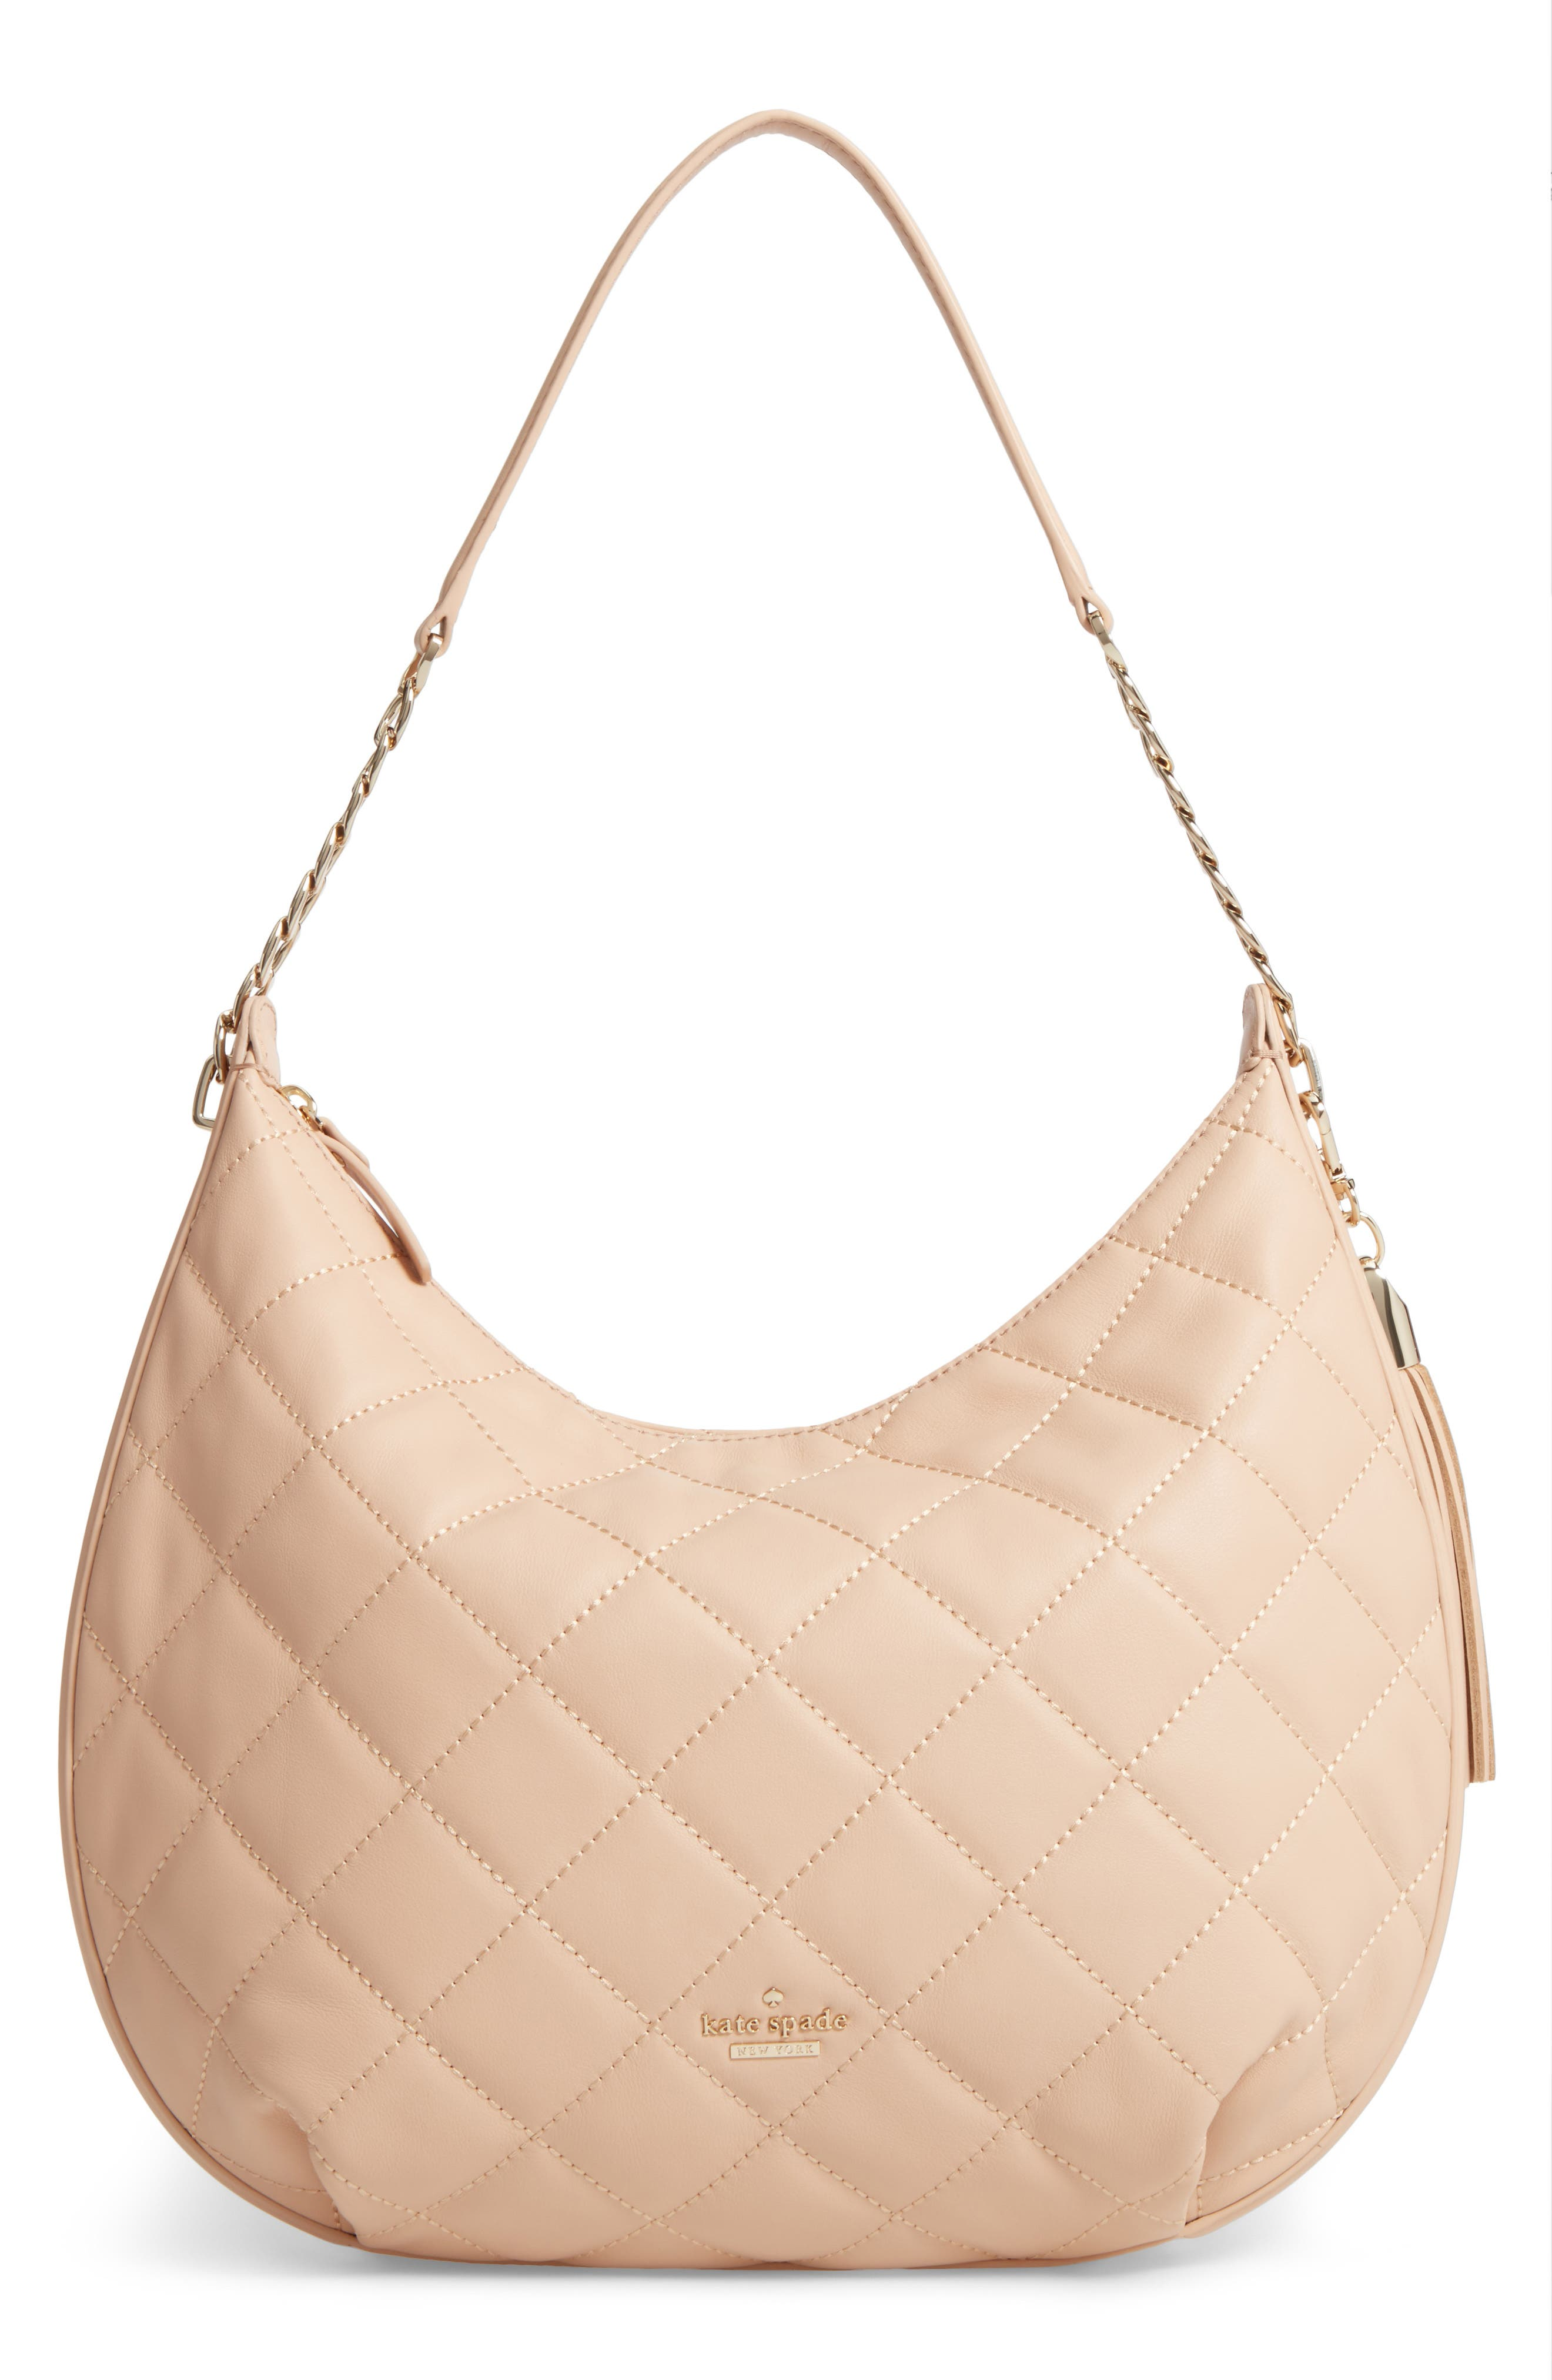 Main Image - kate spade new york emerson place - tamsin leather hobo